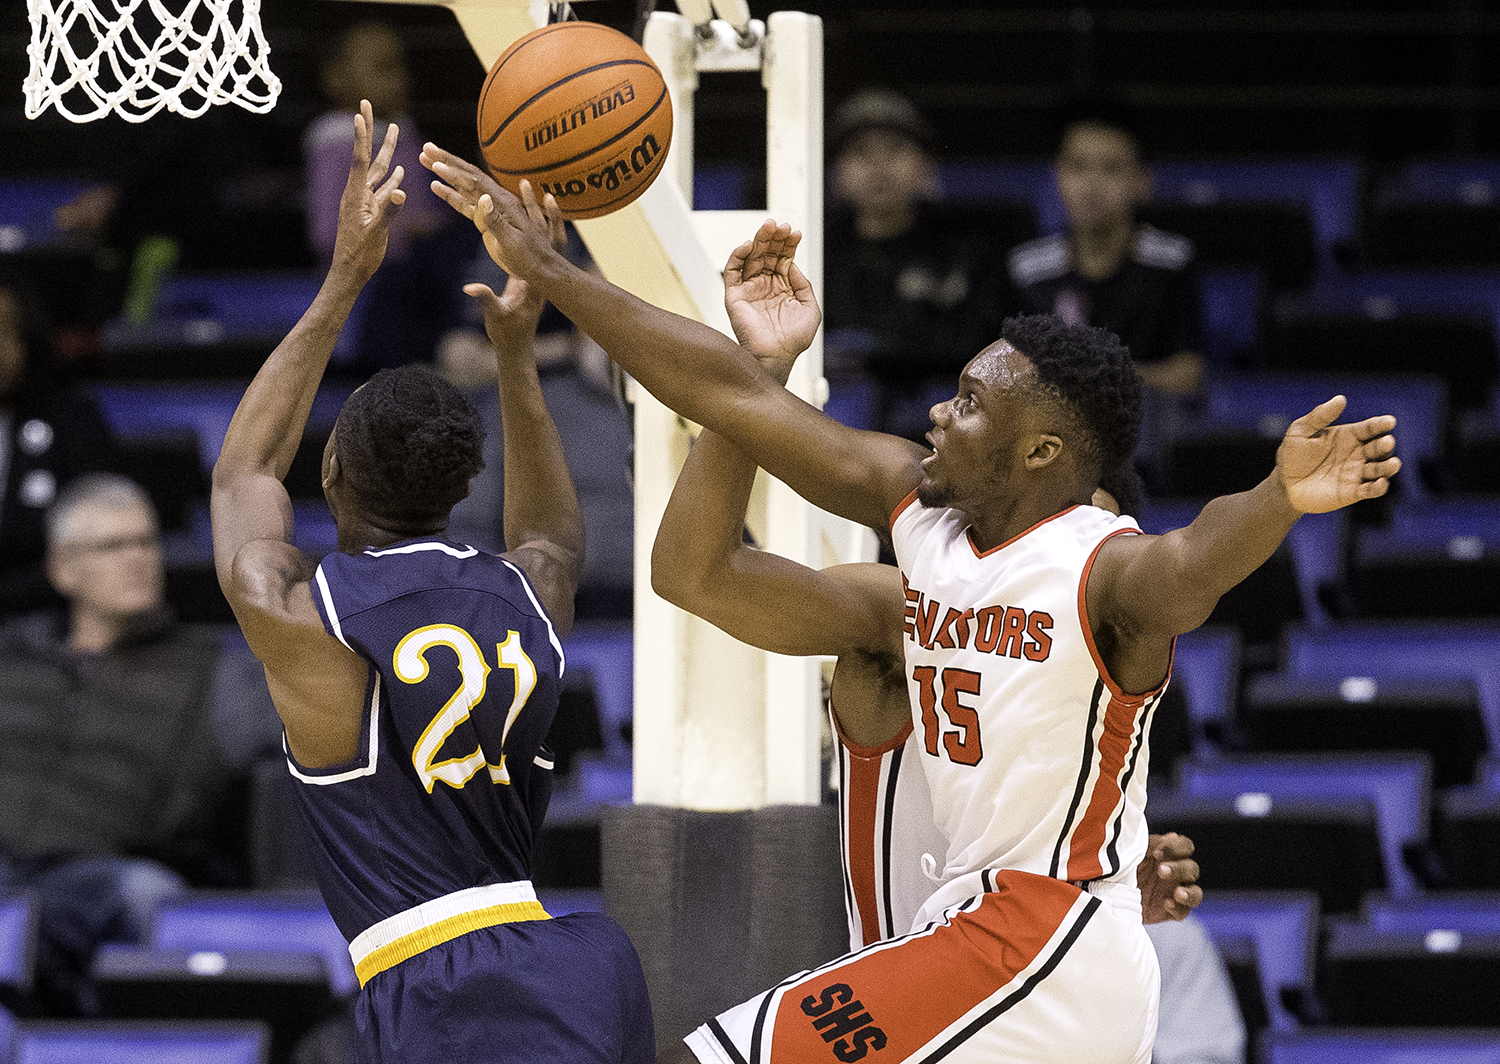 Springfield's Ananise Mackey fouls Southeast's Anthony Fairlee during the Boys City Tournament at the Bank of Springfield Center Friday, Jan. 19, 2018. [Ted Schurter/The State Journal-Register]